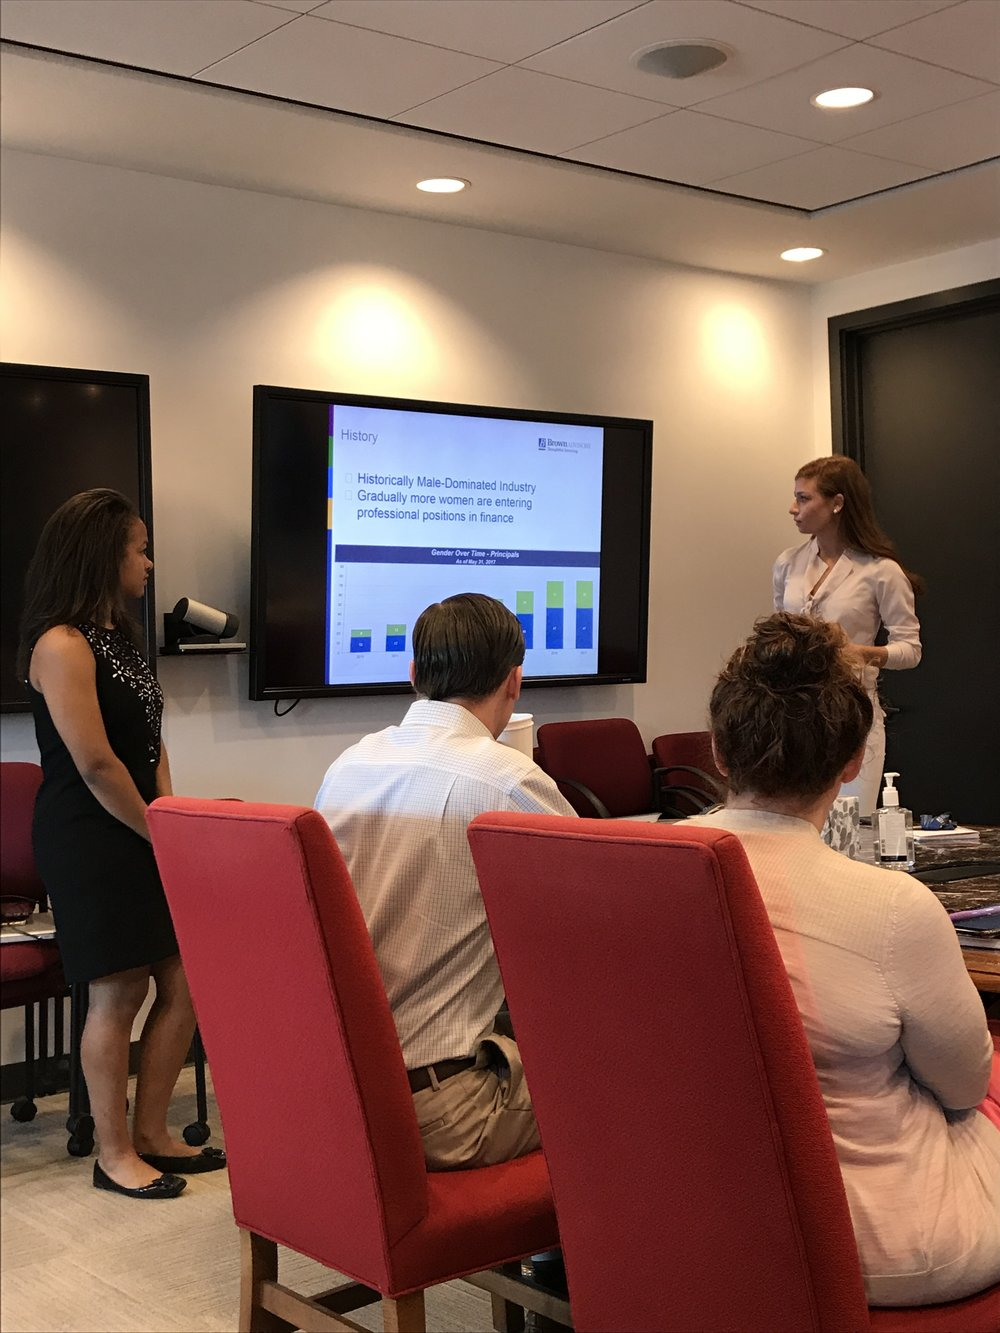 Baltimore fellows Solana Craig (l) of The Bryn Mawr School and Anastasia Swetz (r) of Saint Paul's School for Girls present their research findings on women in finance.